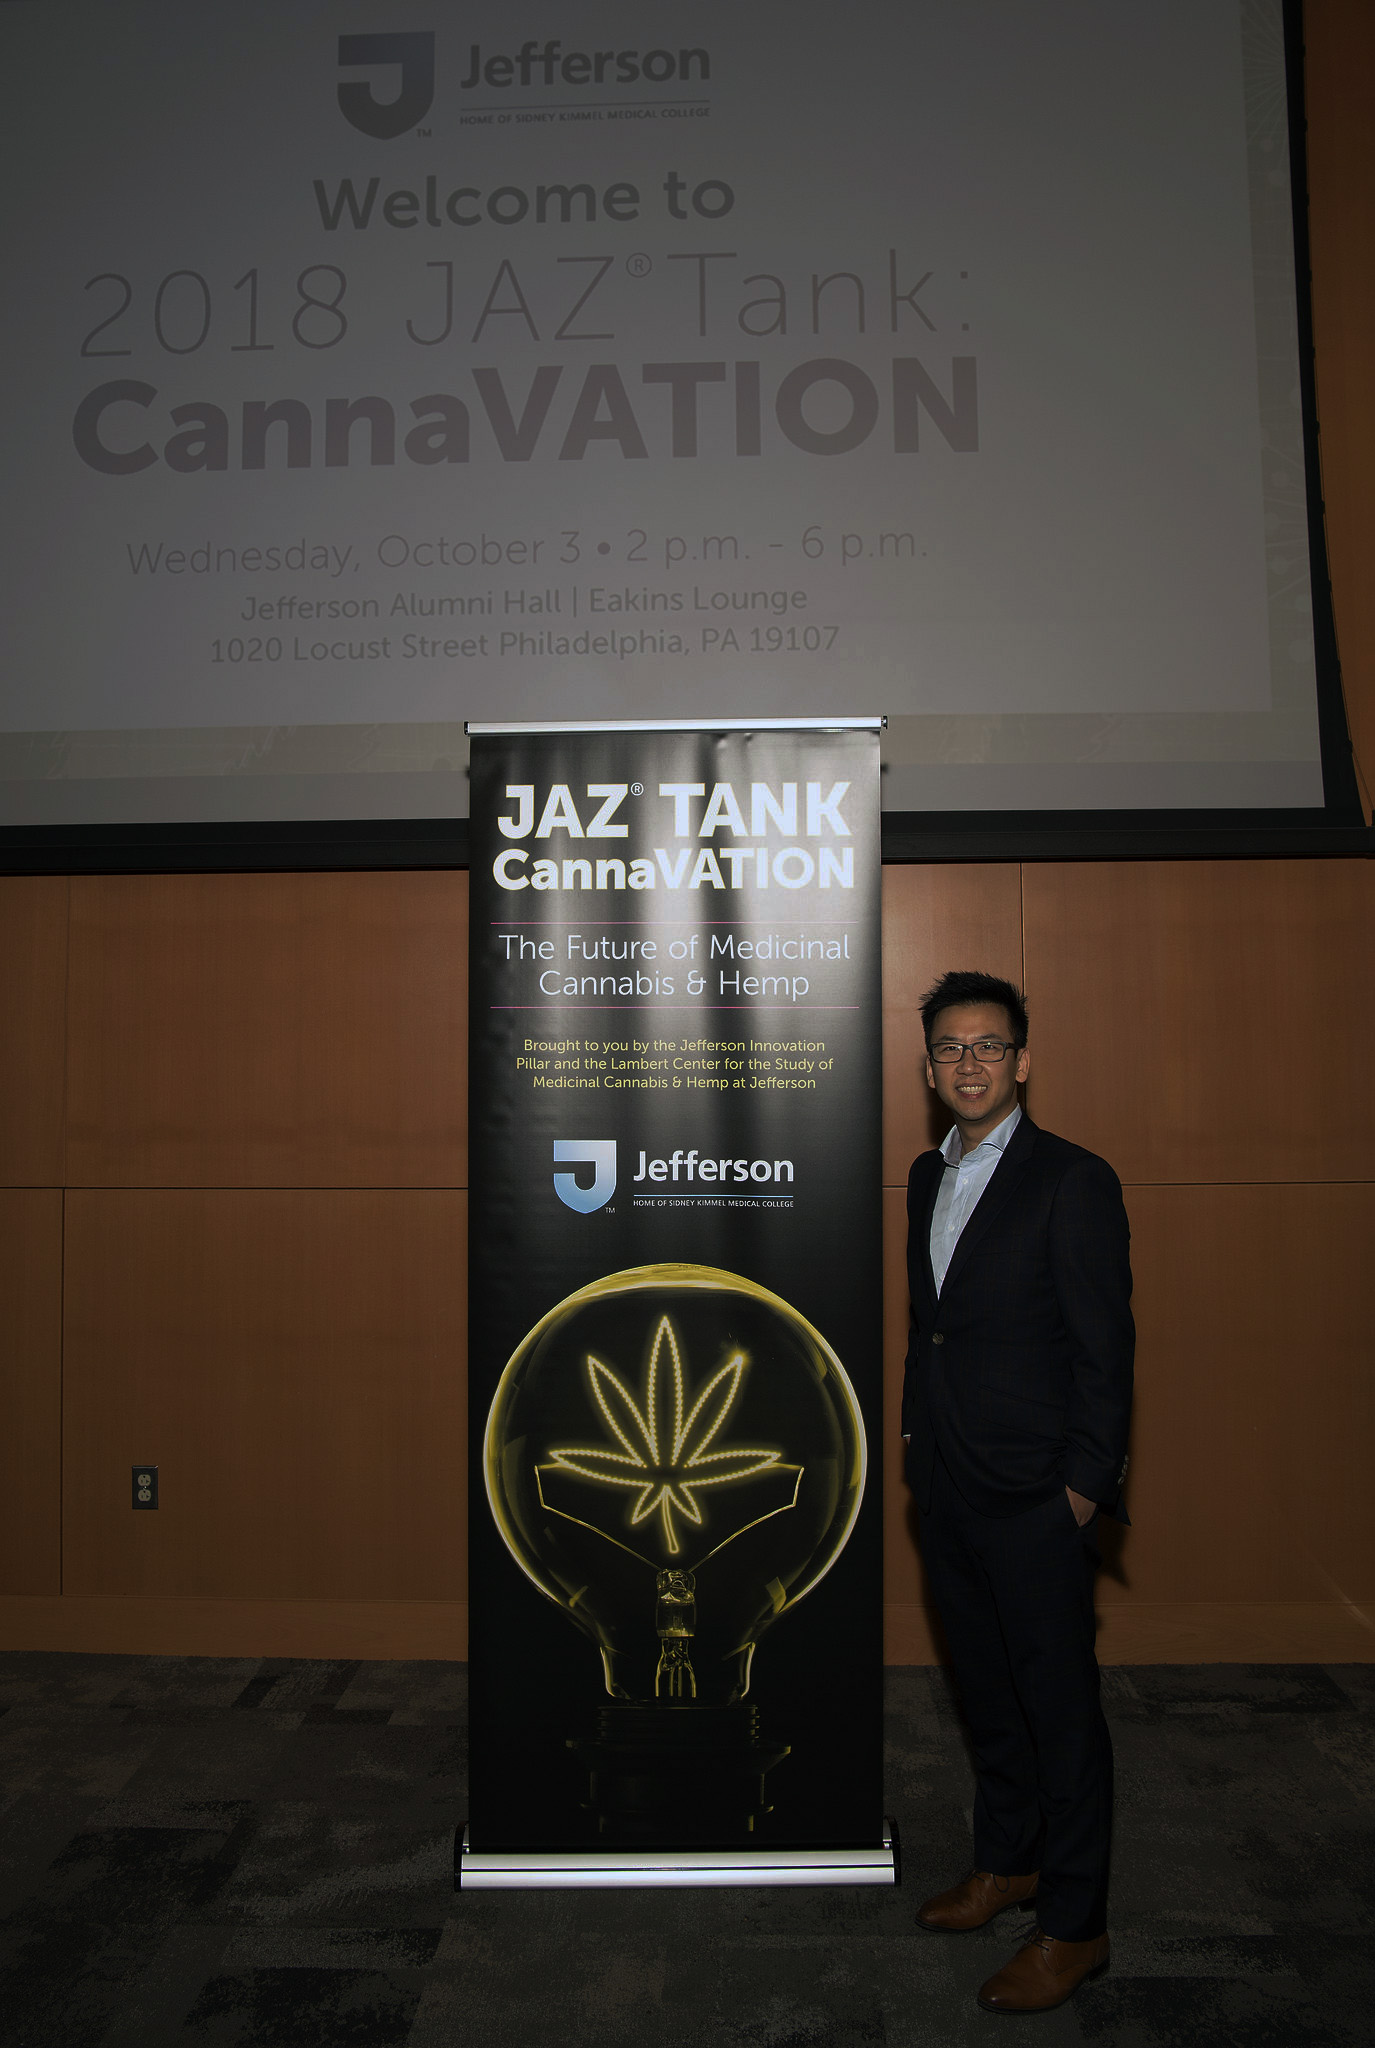 JAZ Tank: CannaVATION